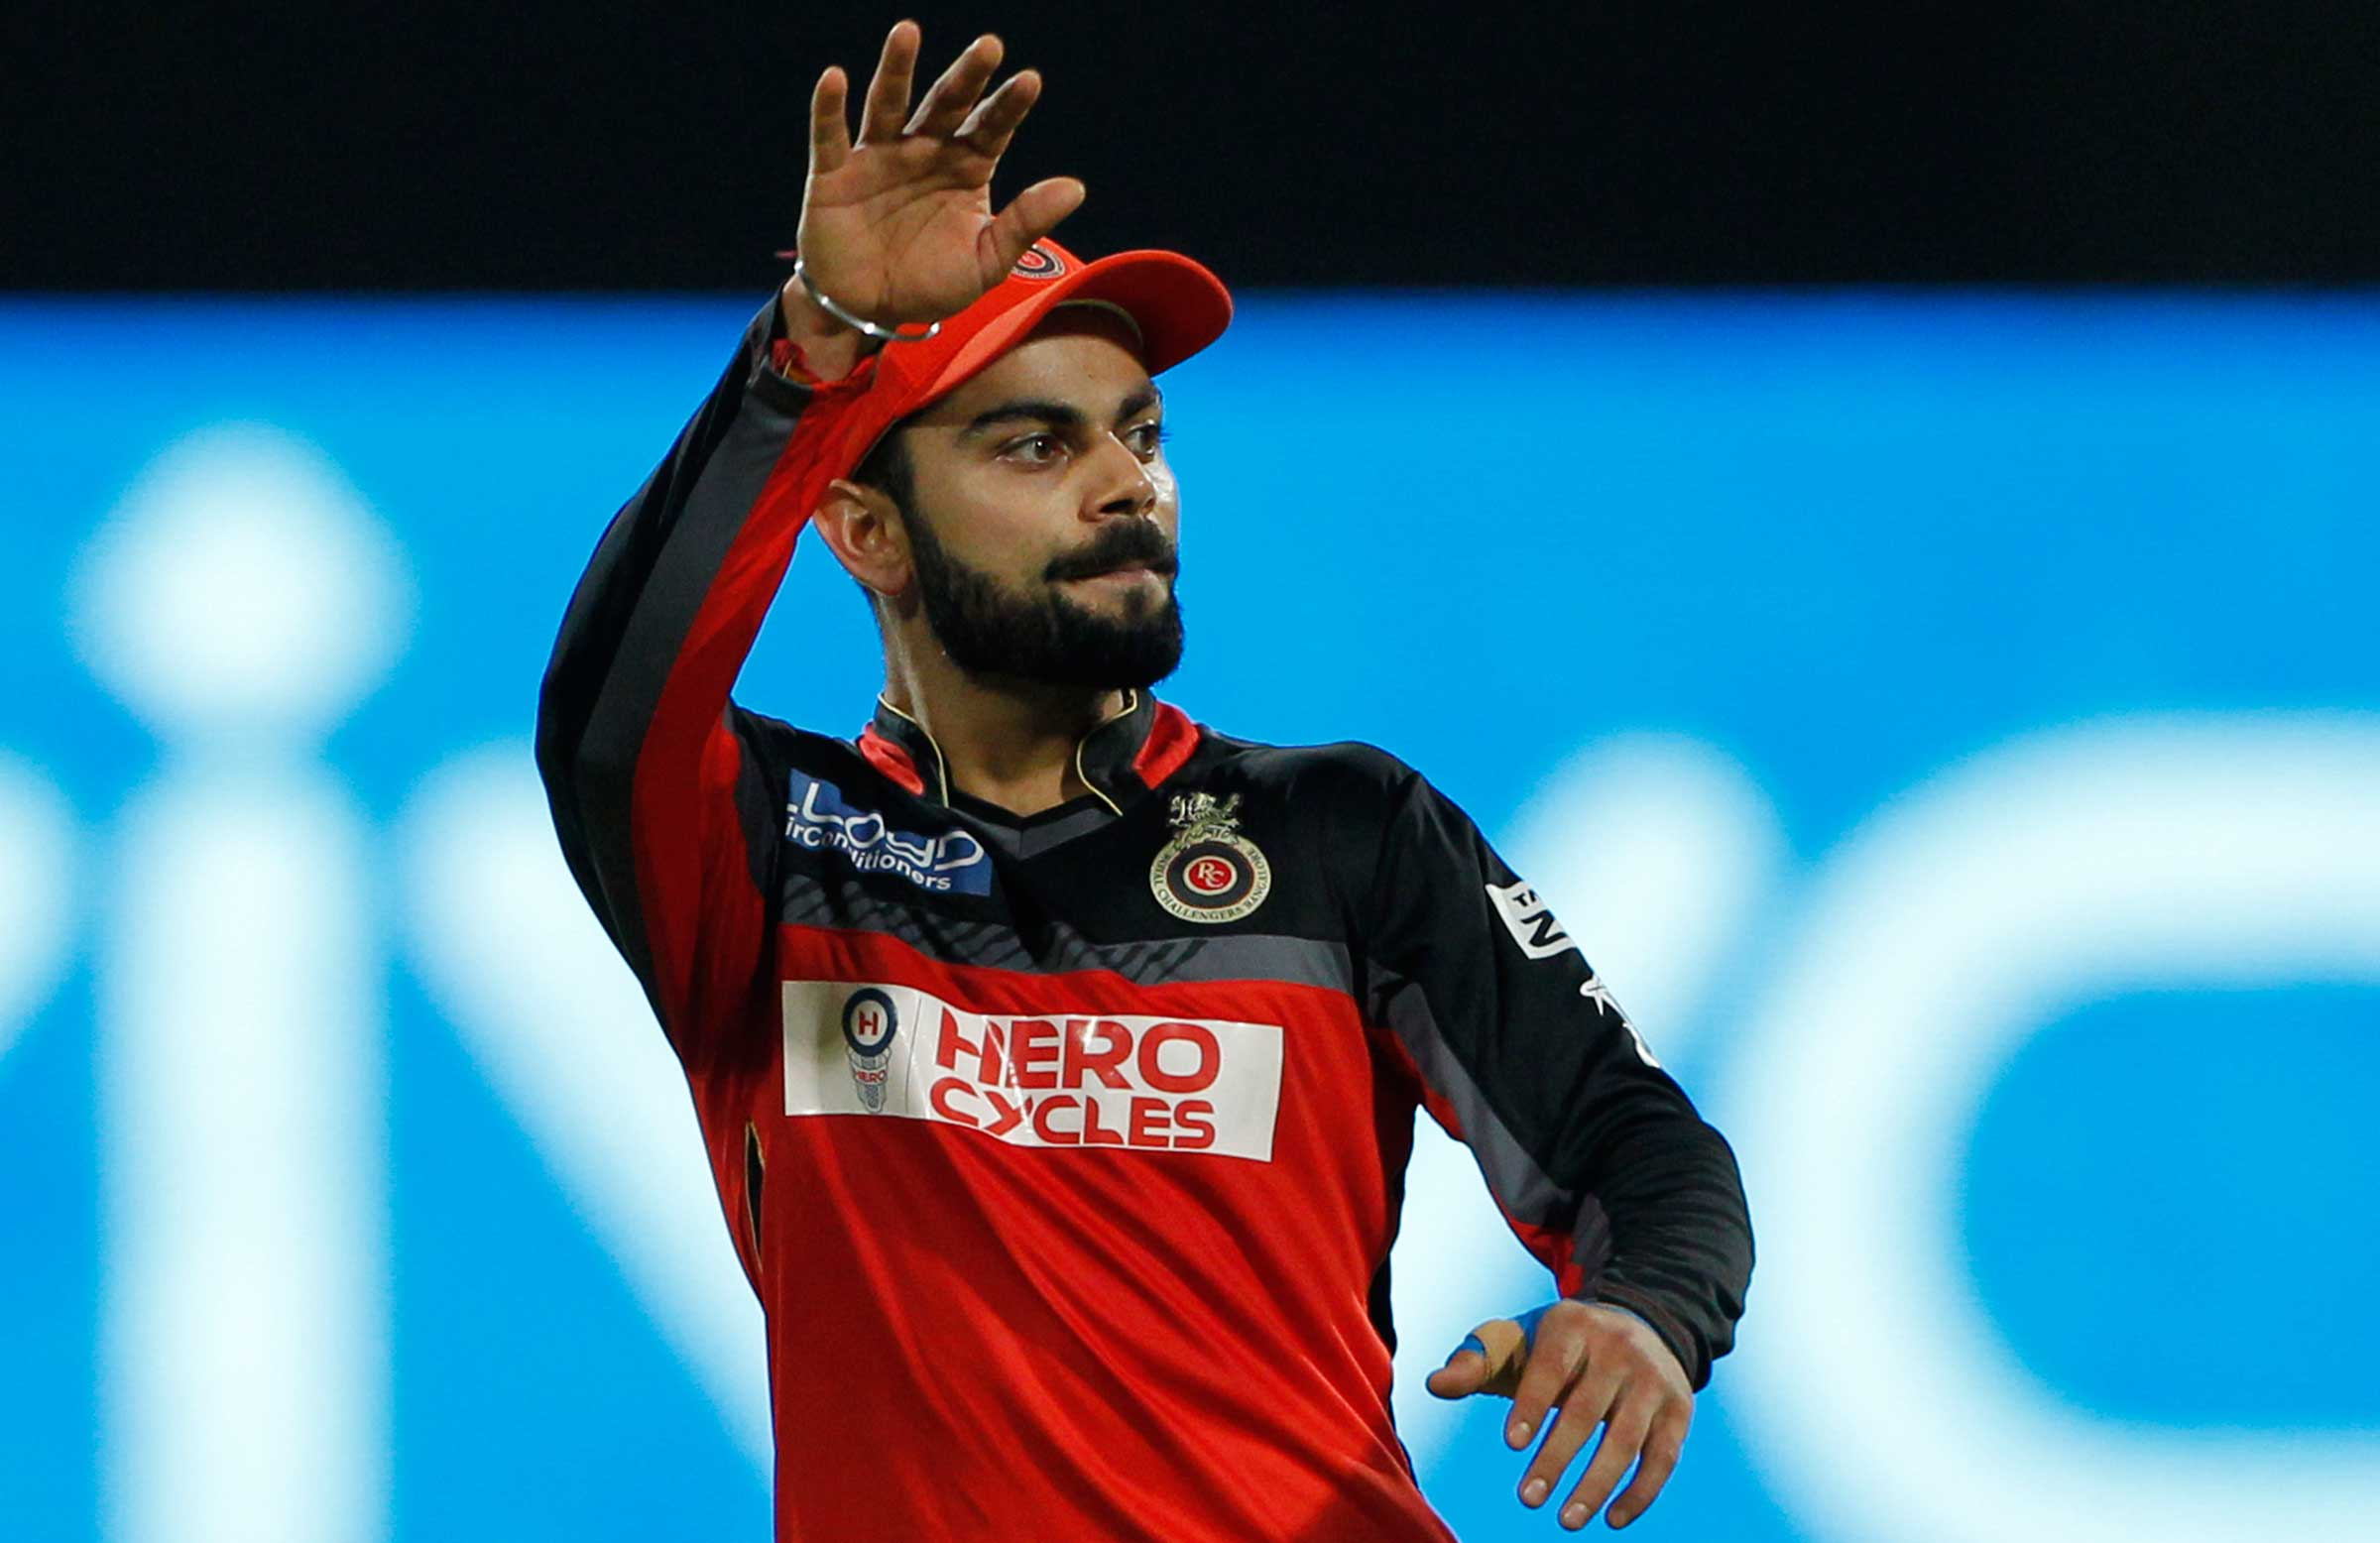 Virat Kohli says friendship comment was blown out of proportion